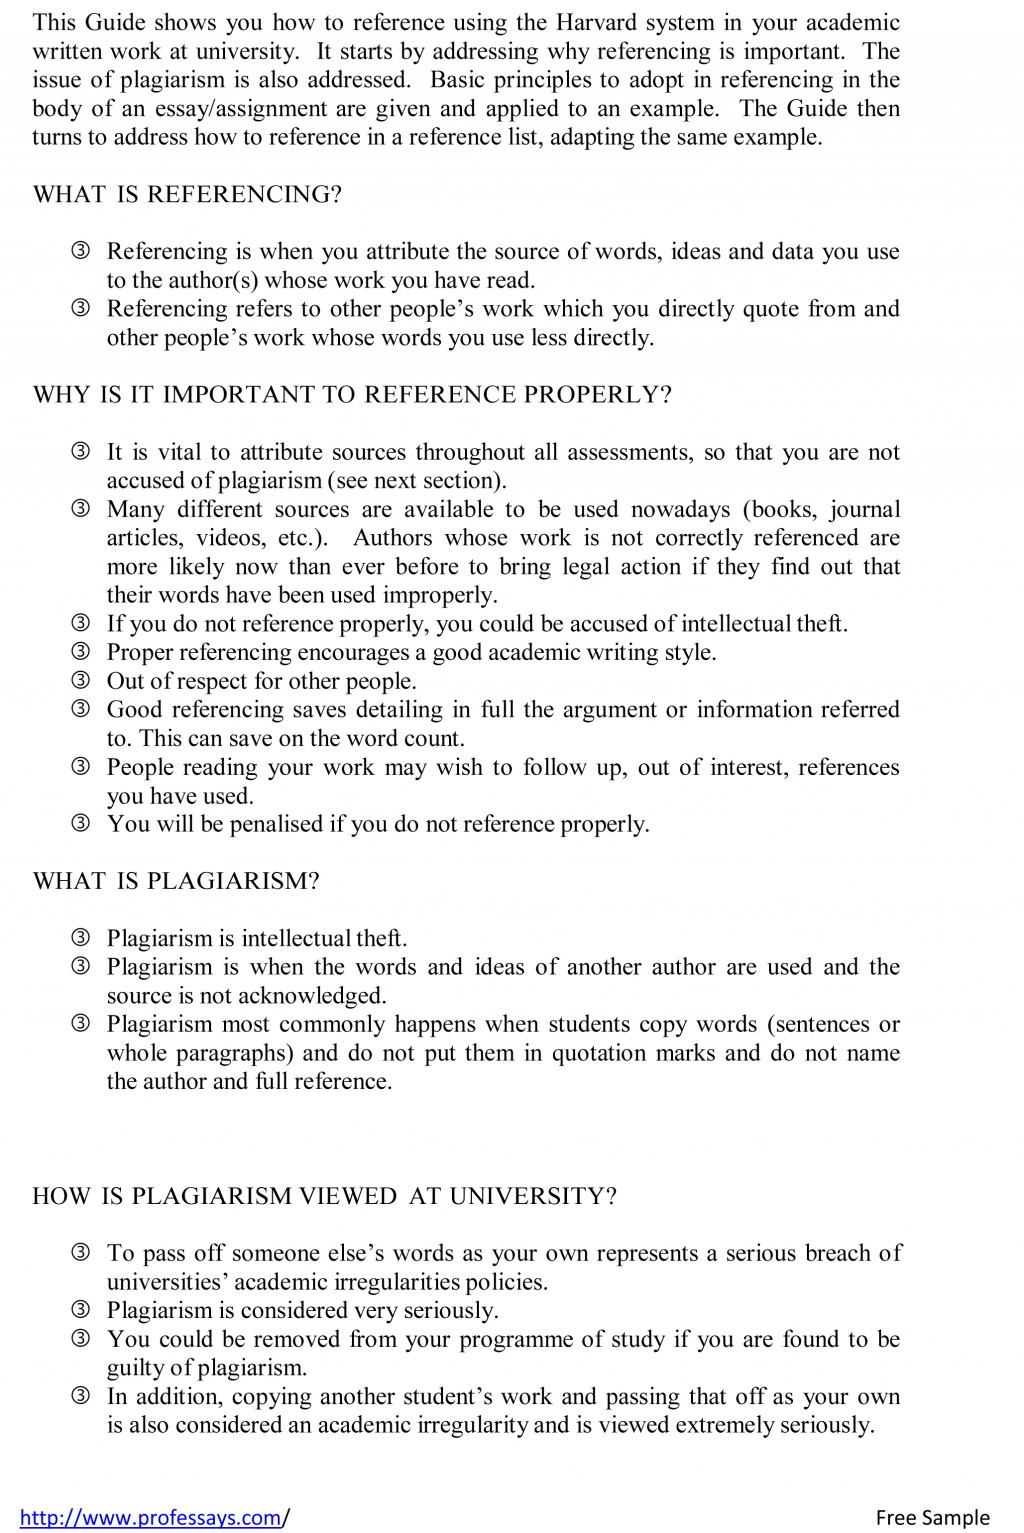 007 Essay Example References Writing Help Academic Essays Fearsome Online Read Buy Large